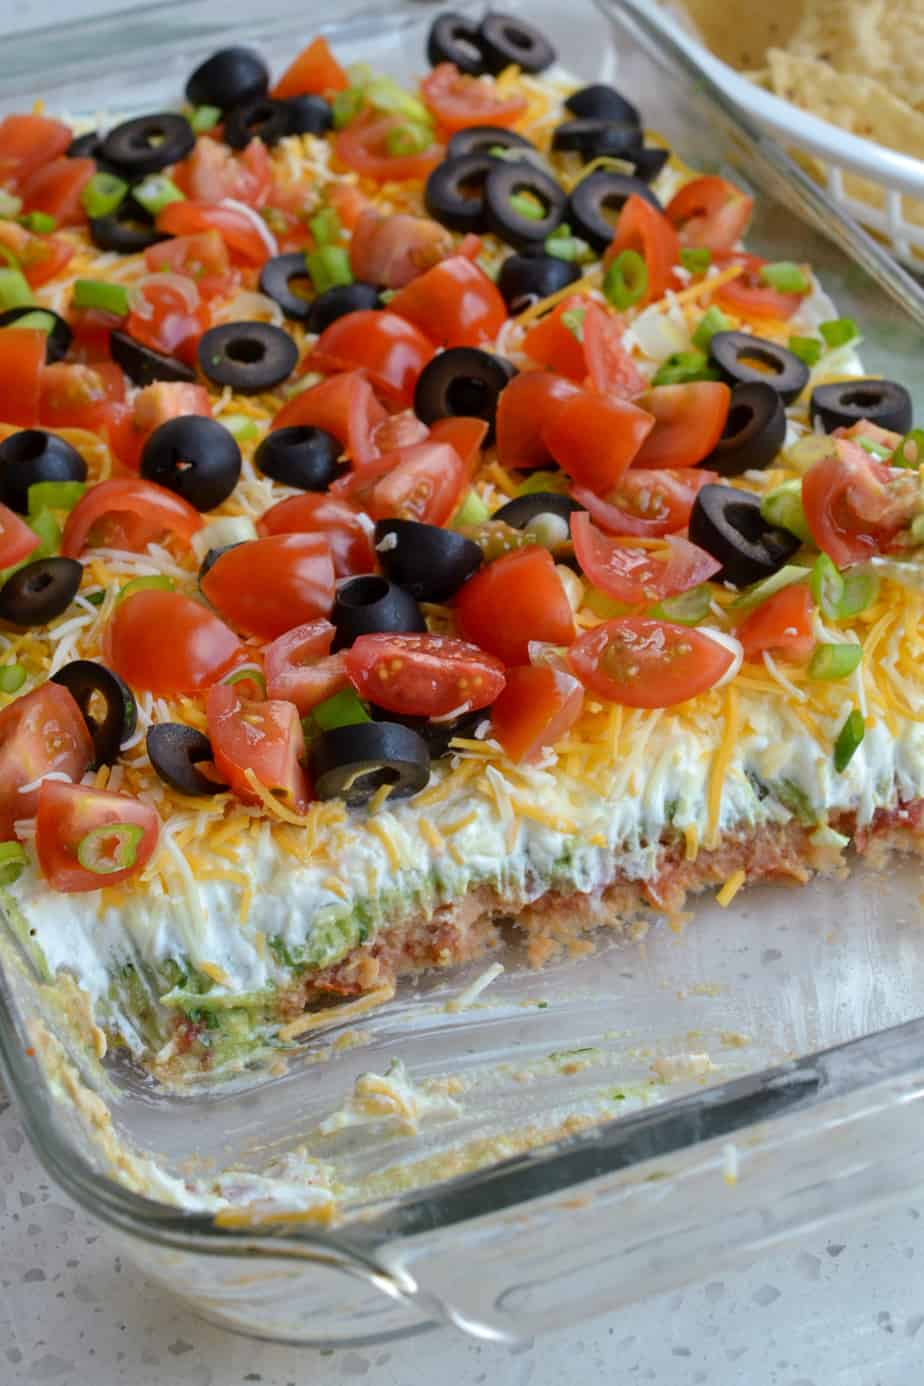 Layered bean dip with avocados and sour cream.